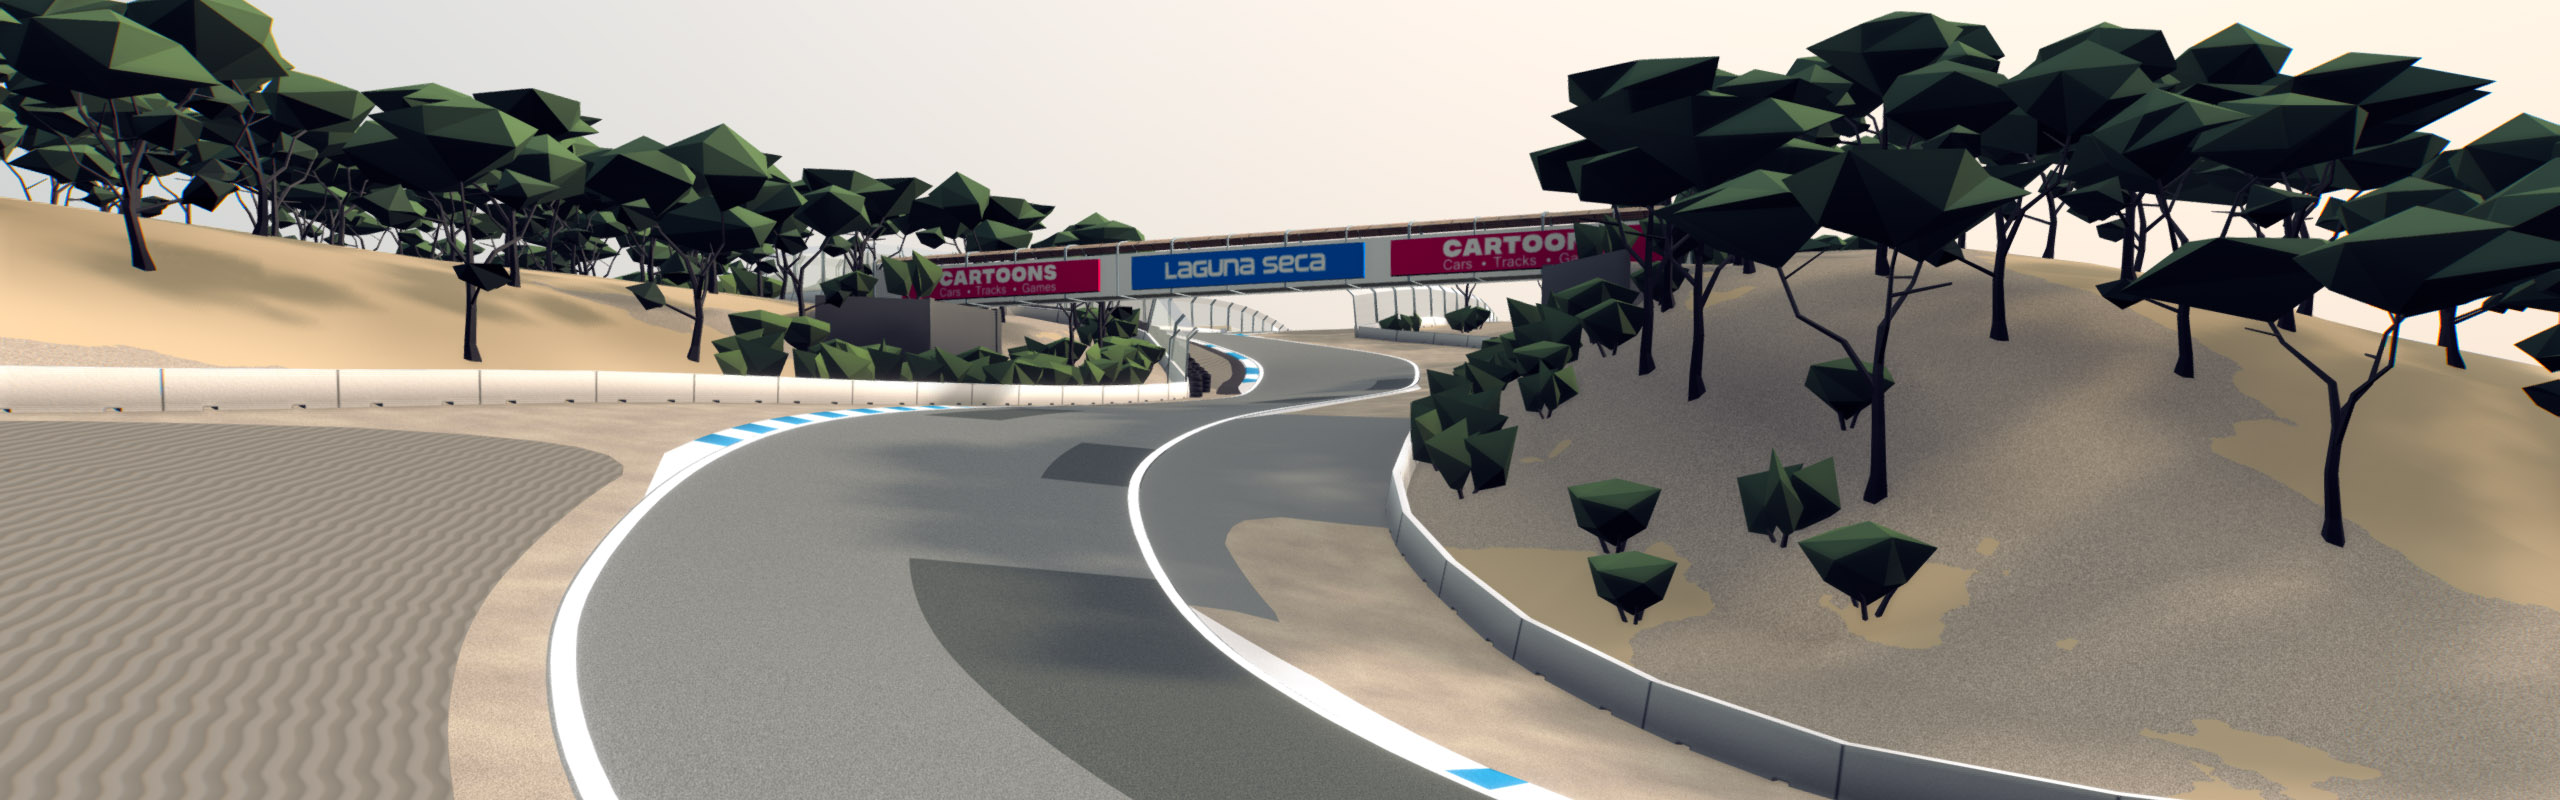 Corkscrew turn of Laguna Seca track